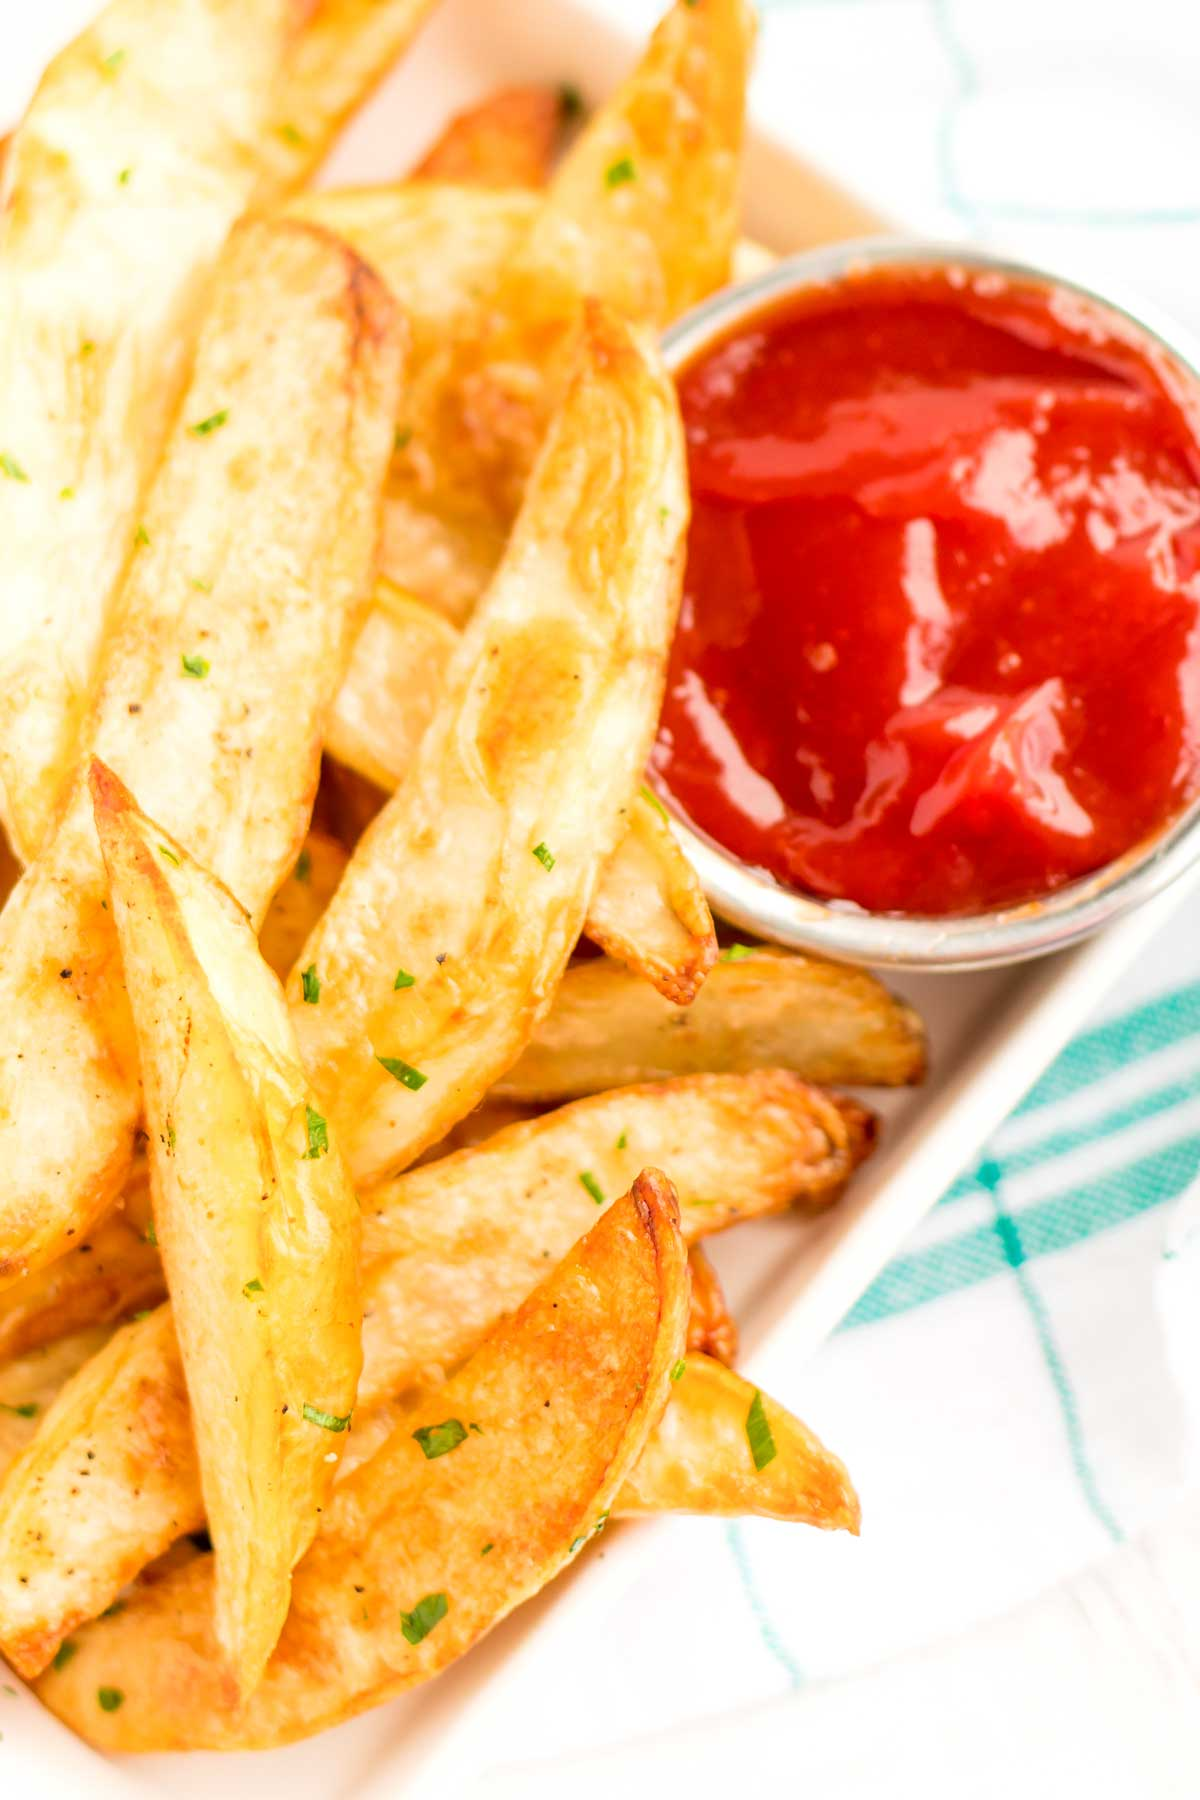 Crispy Baked Oven Fries